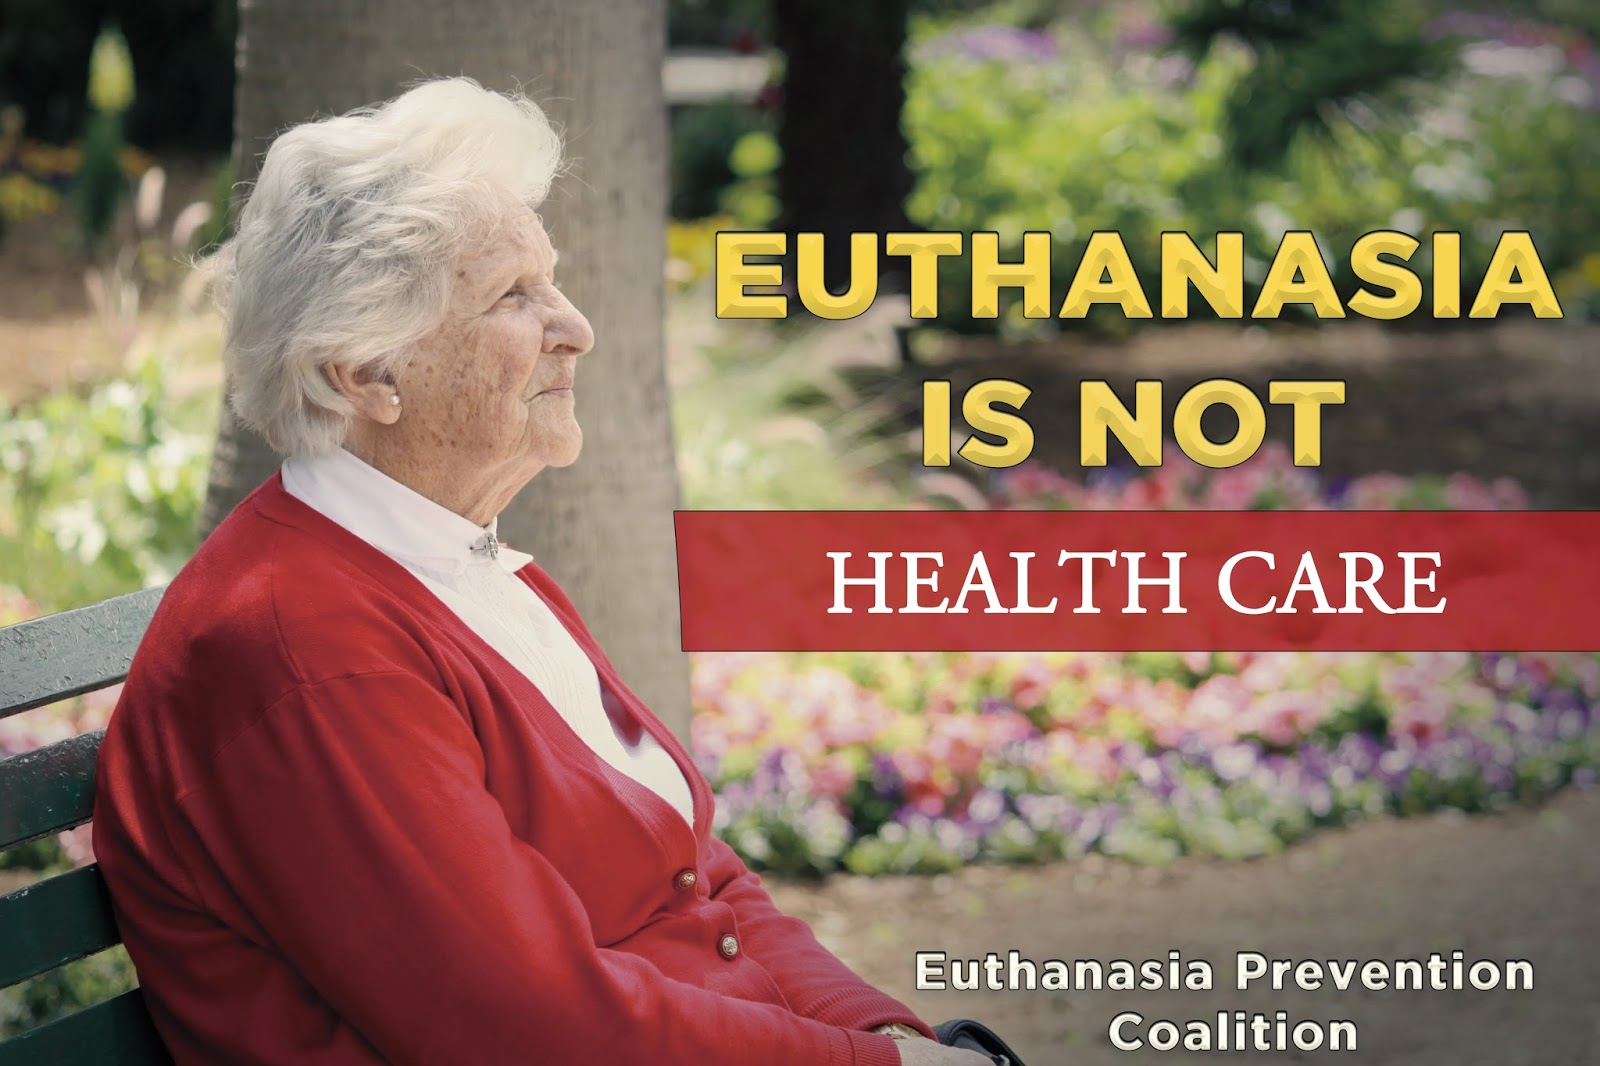 to be or not to be euthanasia Chapter 5 - the ethical debate  the ethical debate page 107 whether to assist suicide or perform euthanasia is not essentially a medical judgment, and falls .